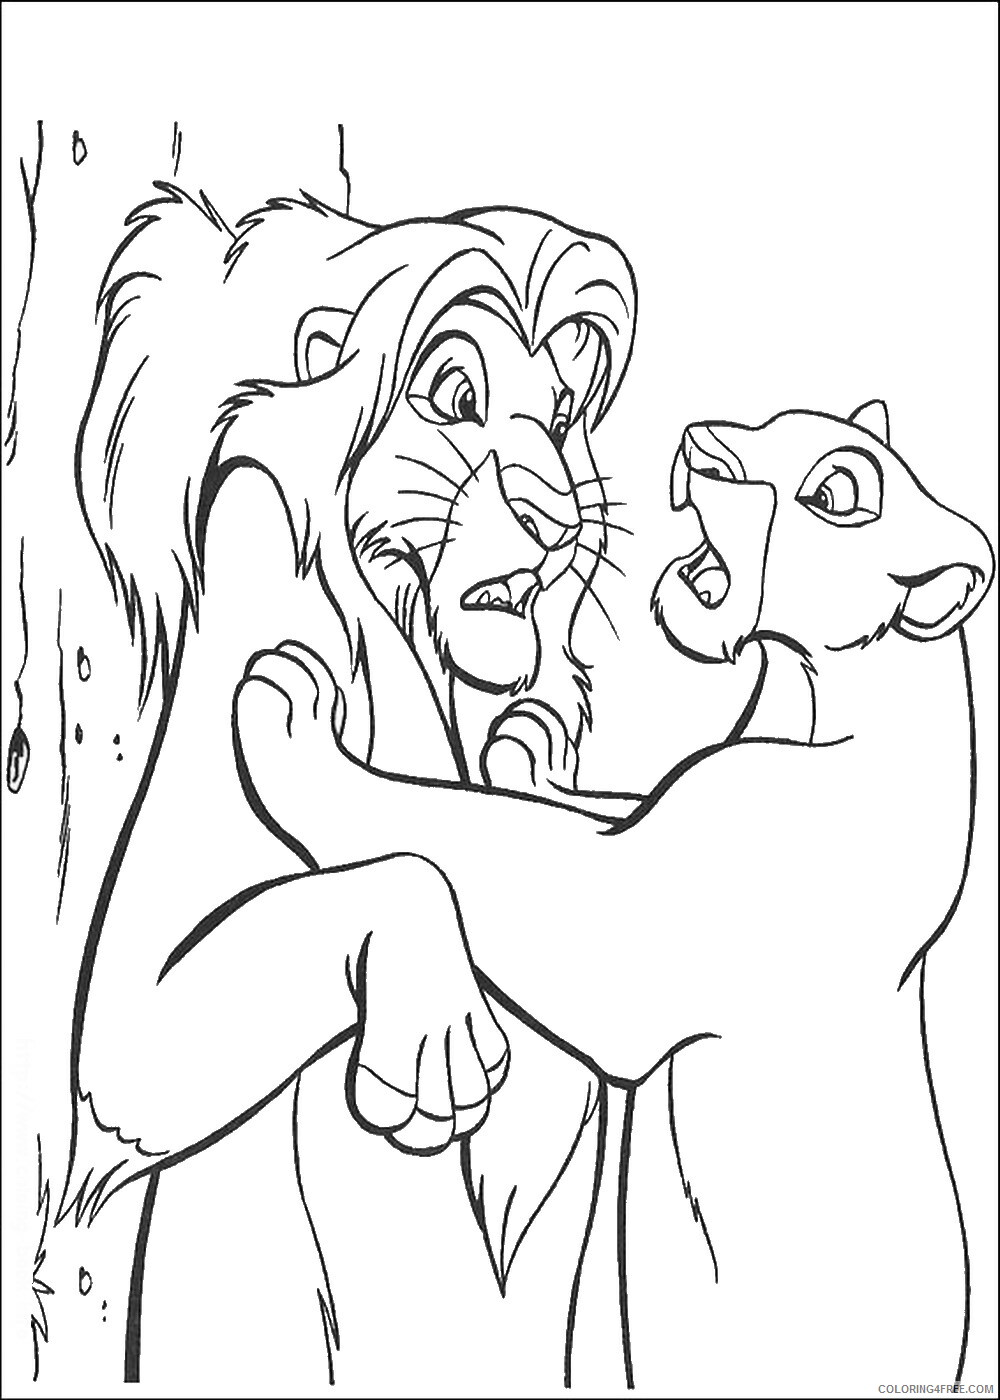 The Lion King Coloring Pages TV Film lionking_88 Printable 2020 09203 Coloring4free